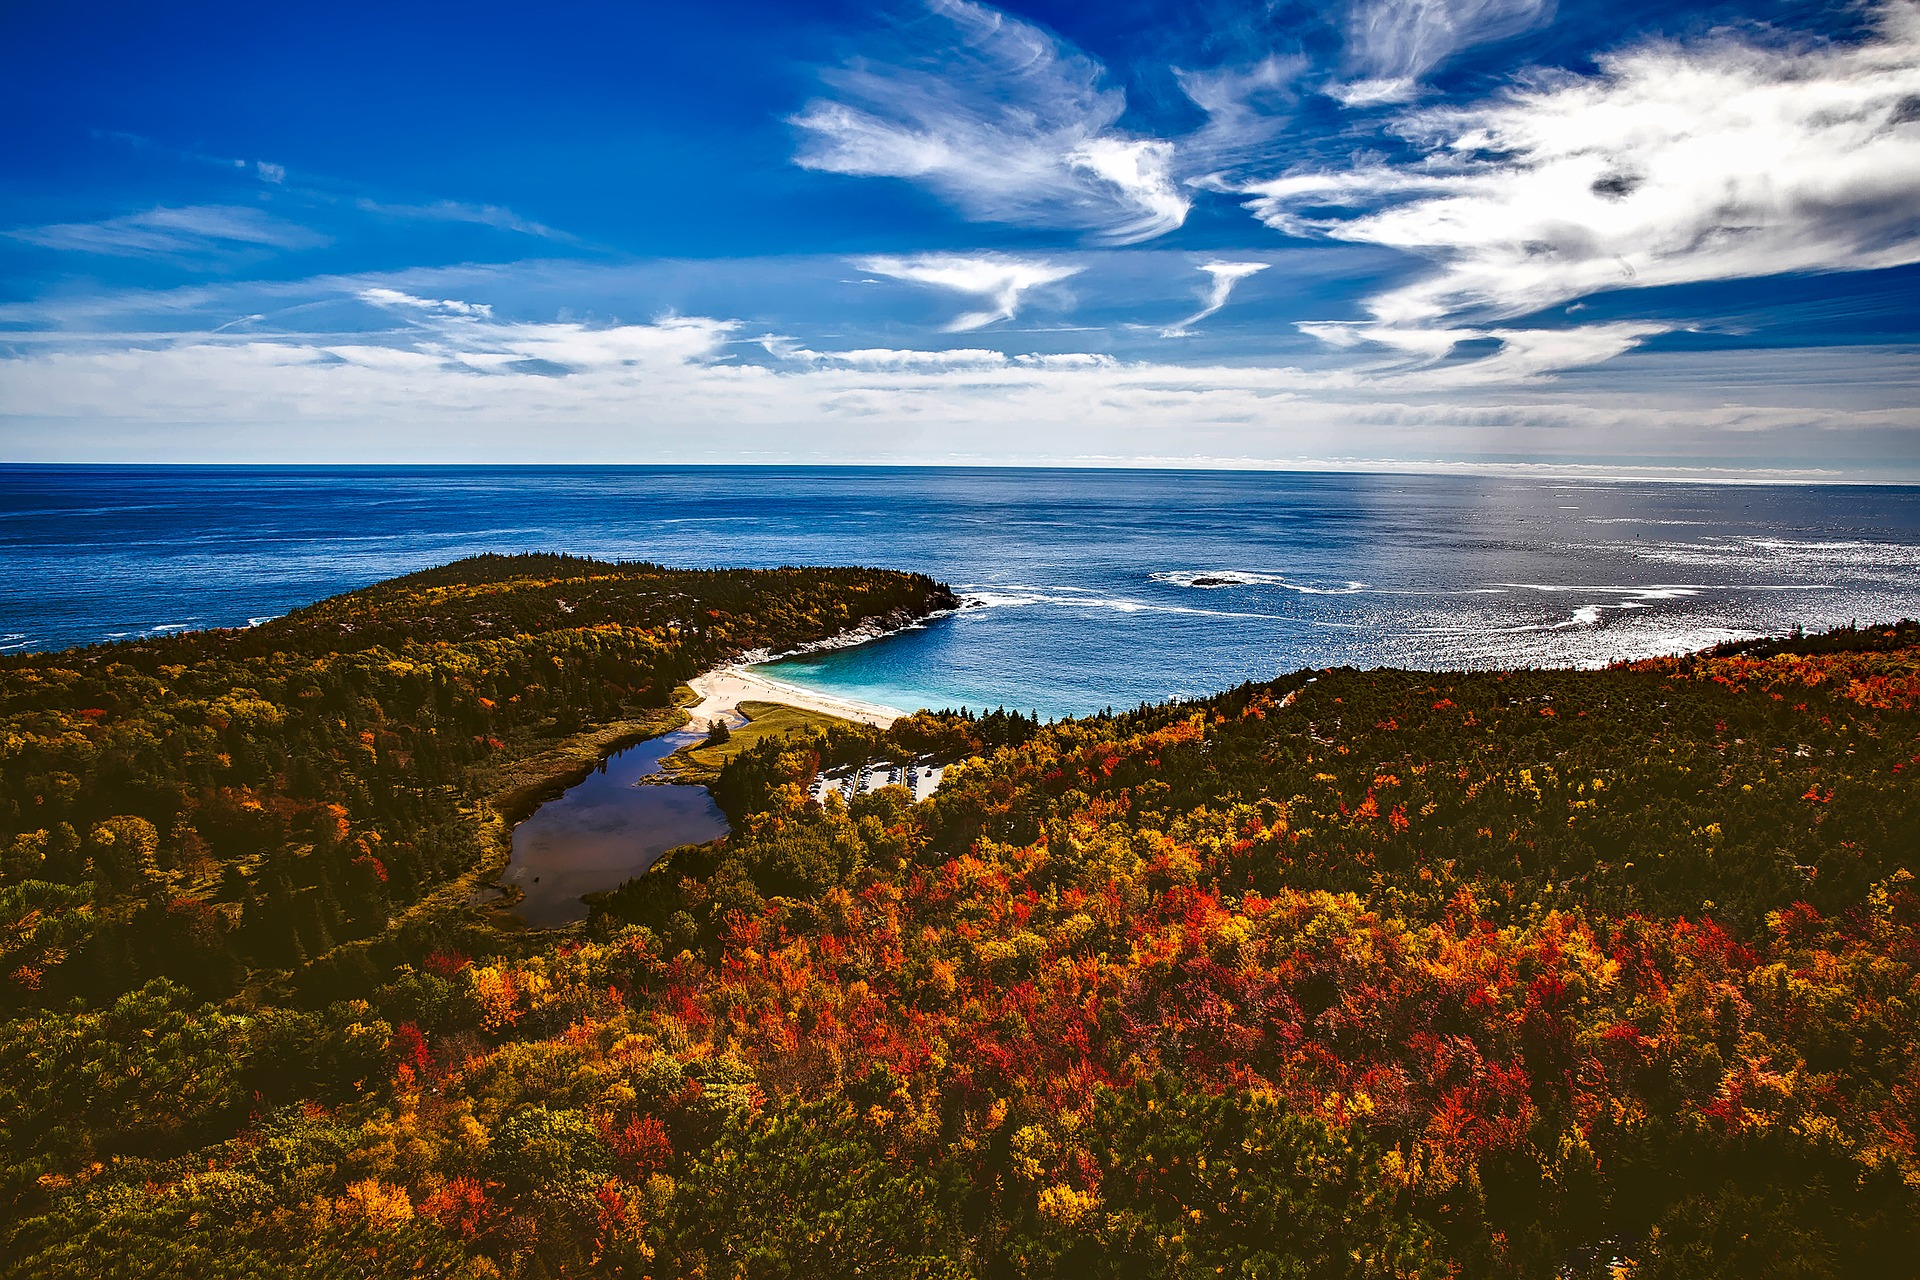 aerial shot of the coastline of Maine with coloured leaves in the fall